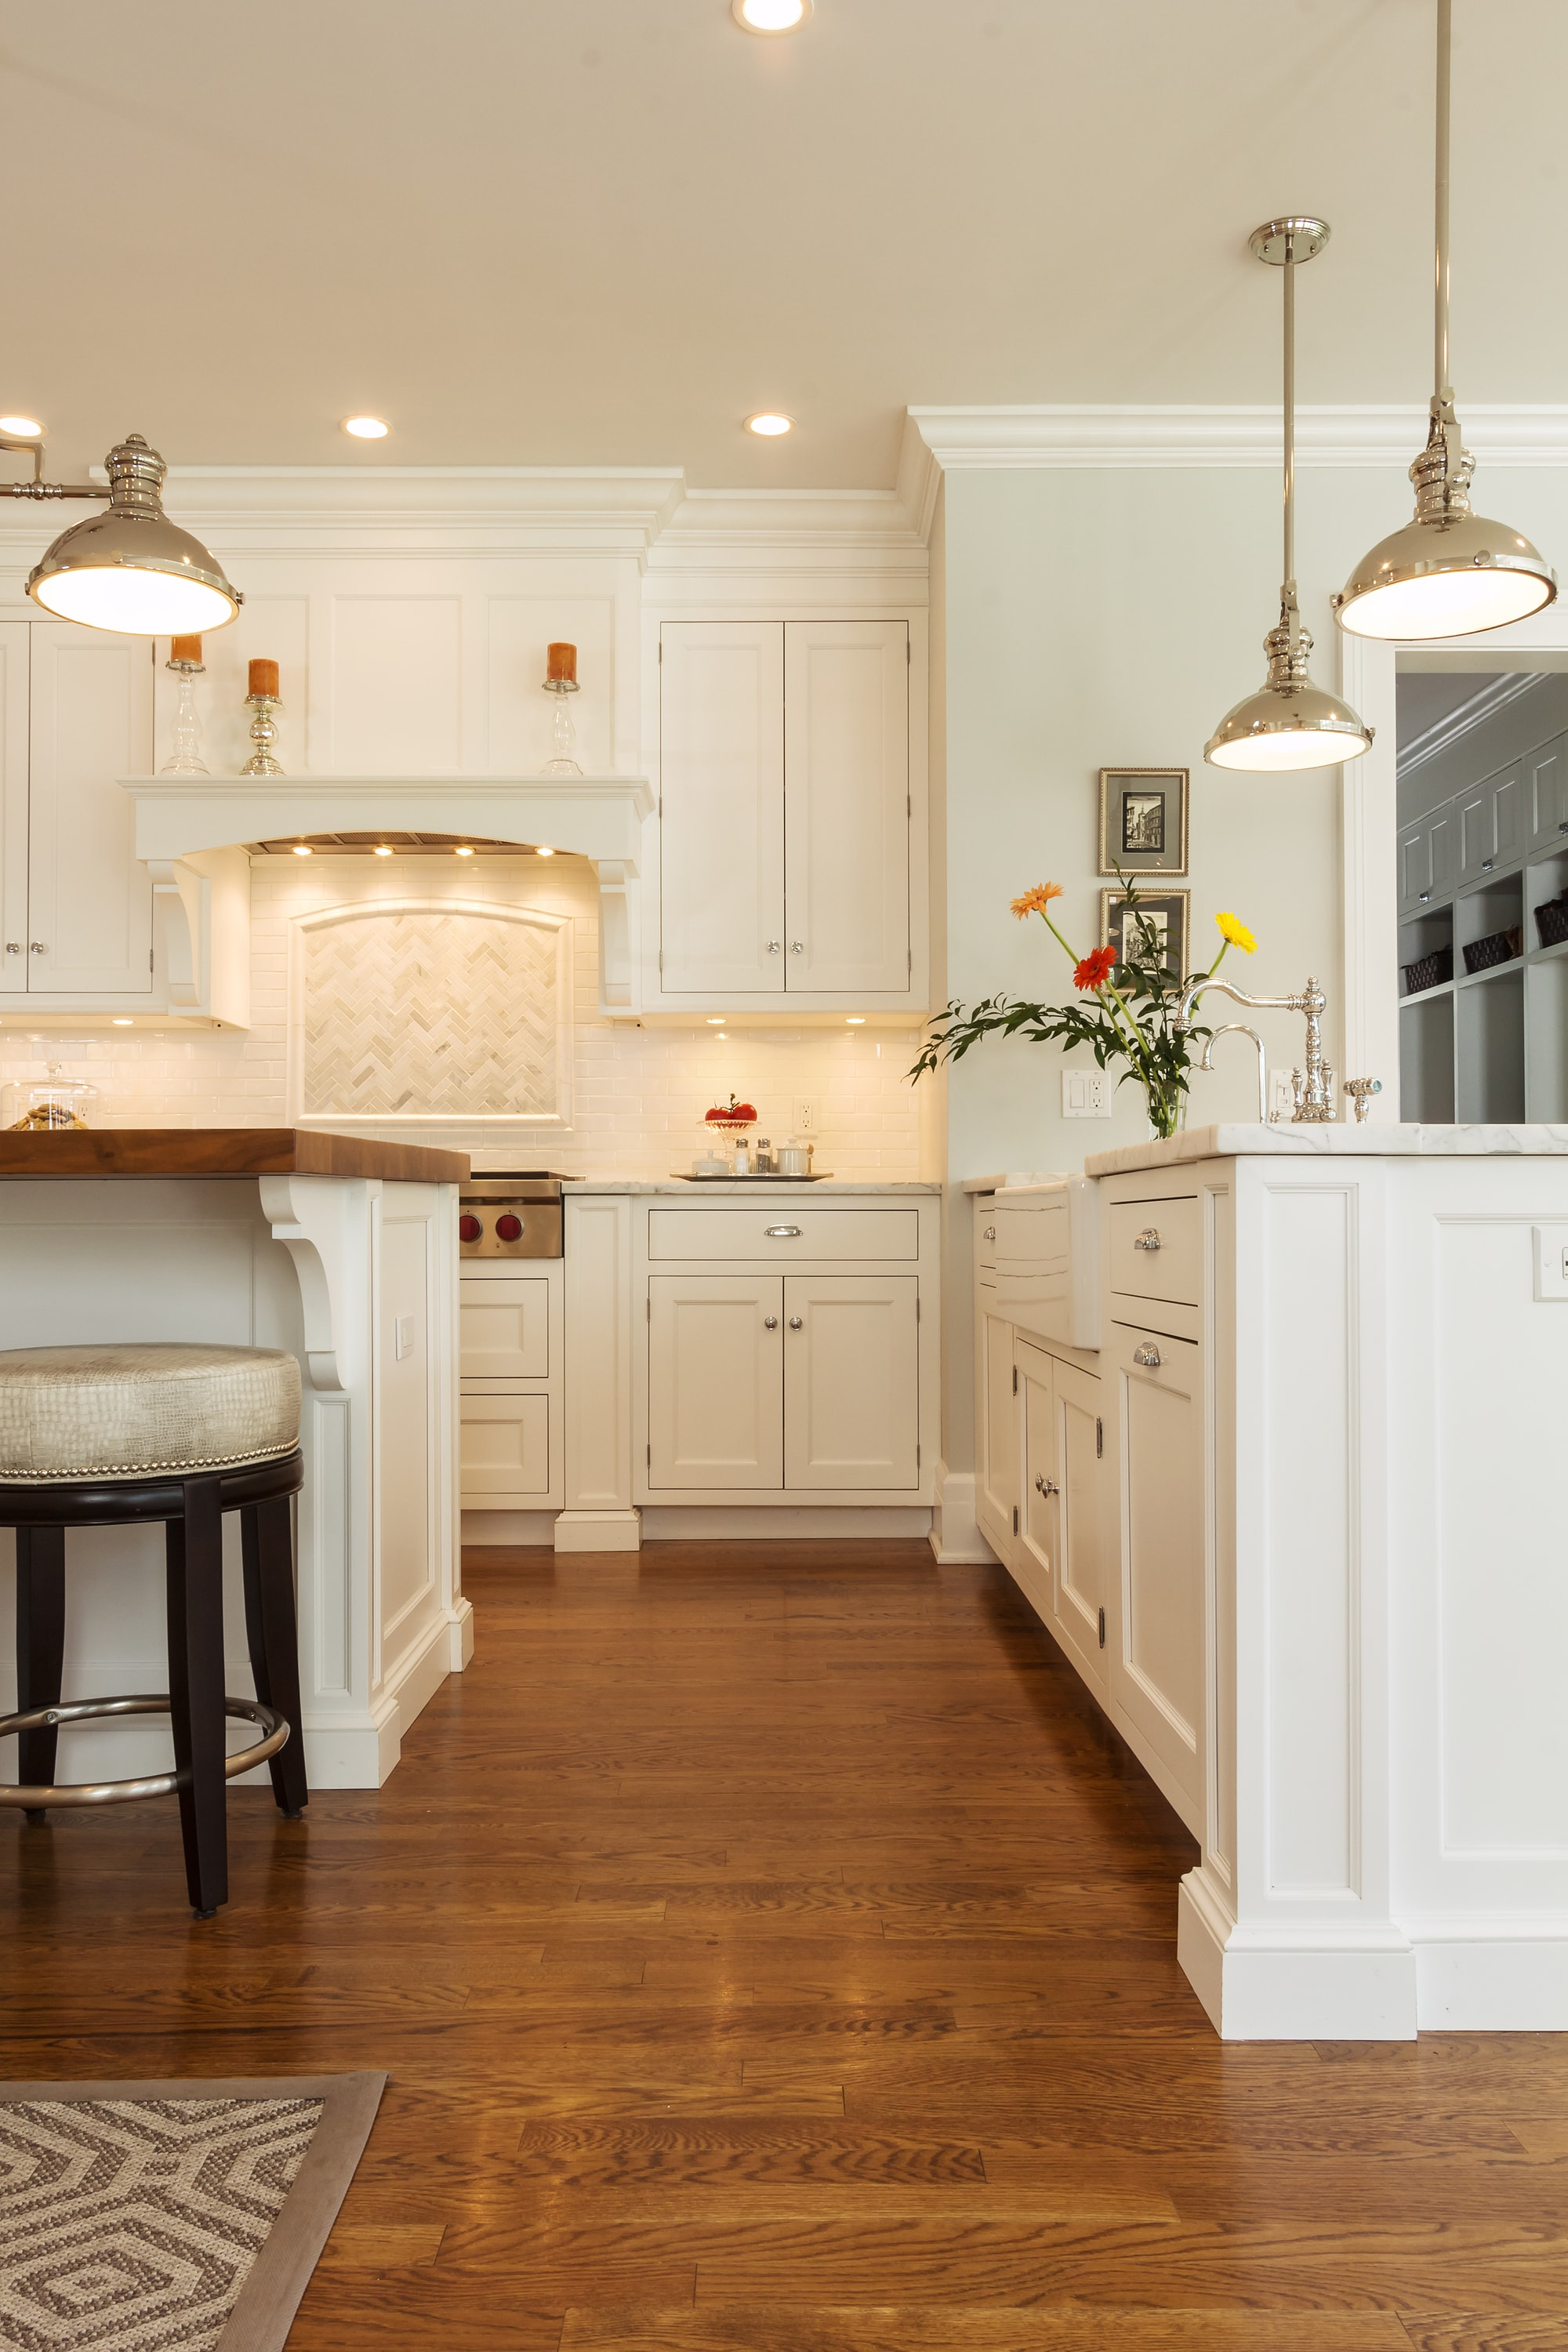 Transitional style kitchen with spacious floor